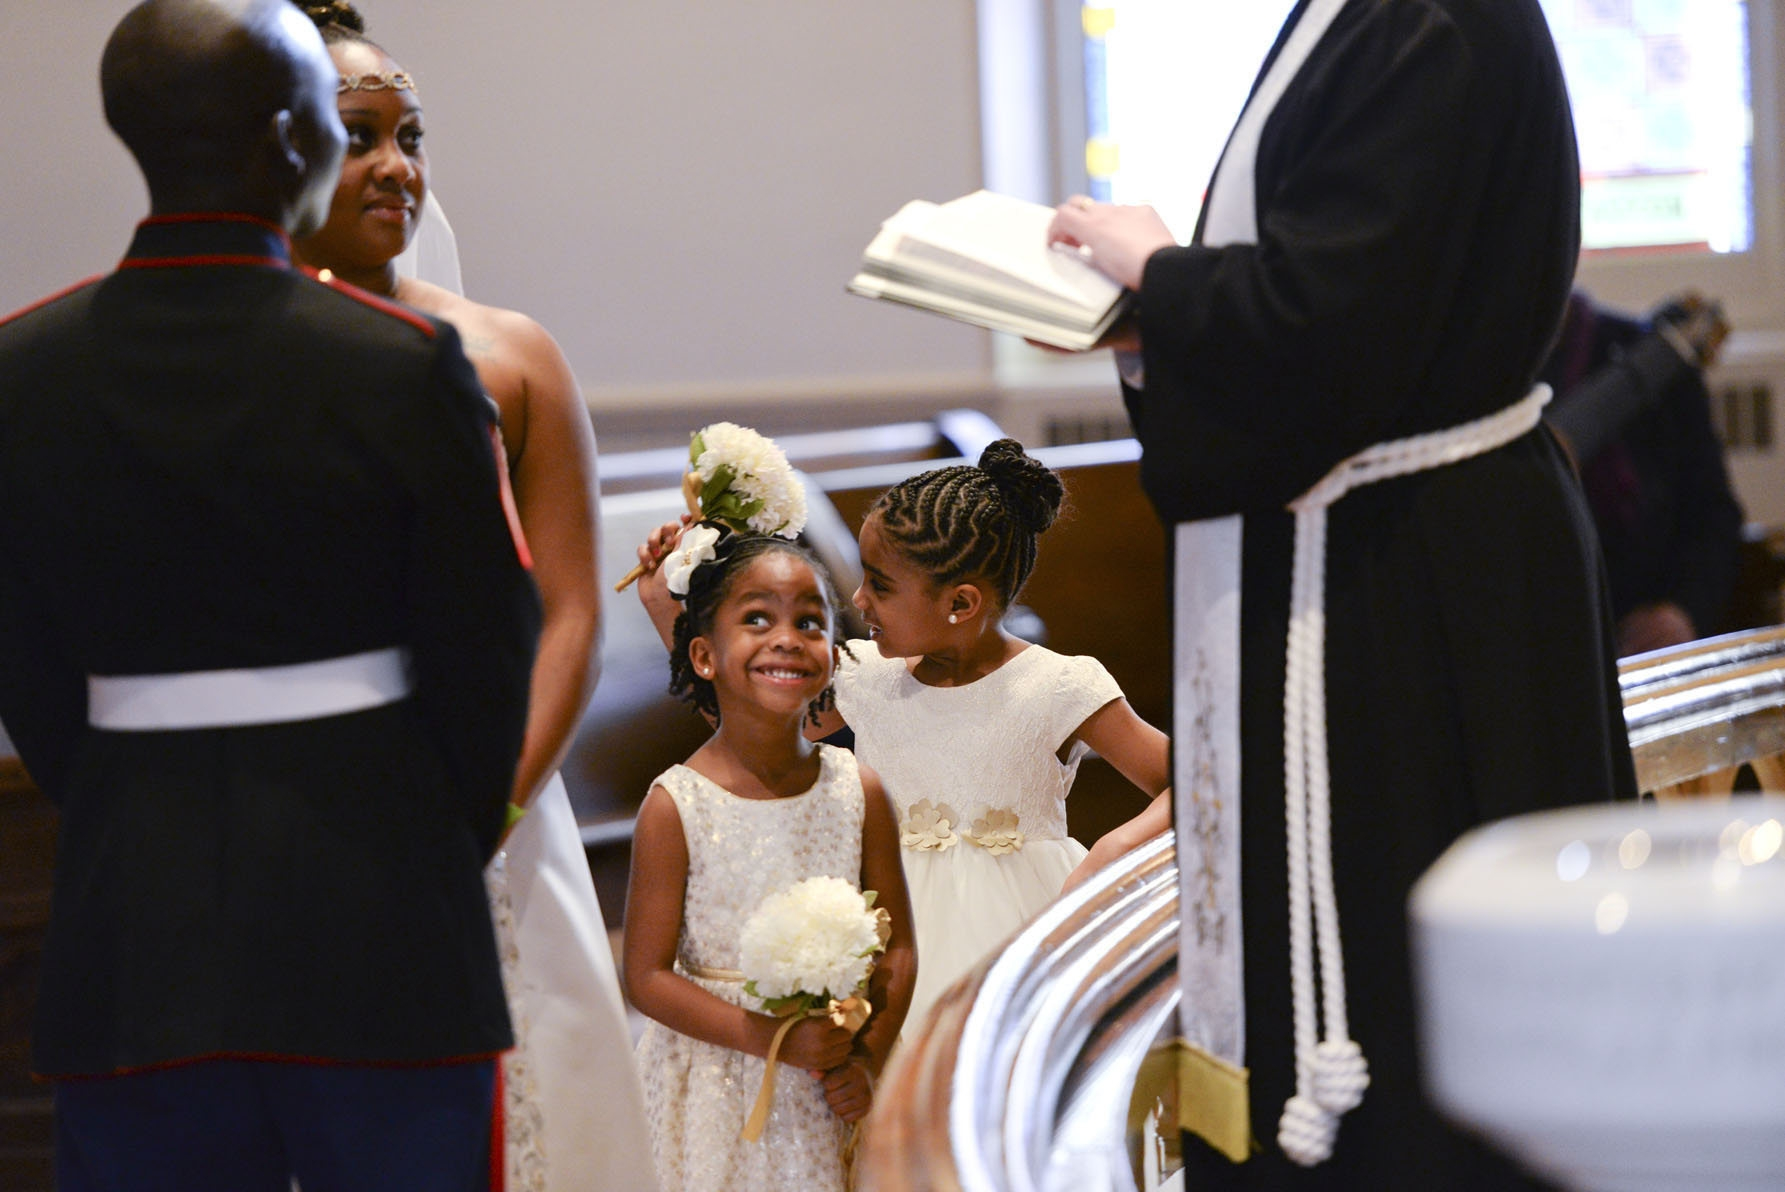 To avoid any hurt feelings among family members, make a uniform policy when it comes to inviting children to your wedding.